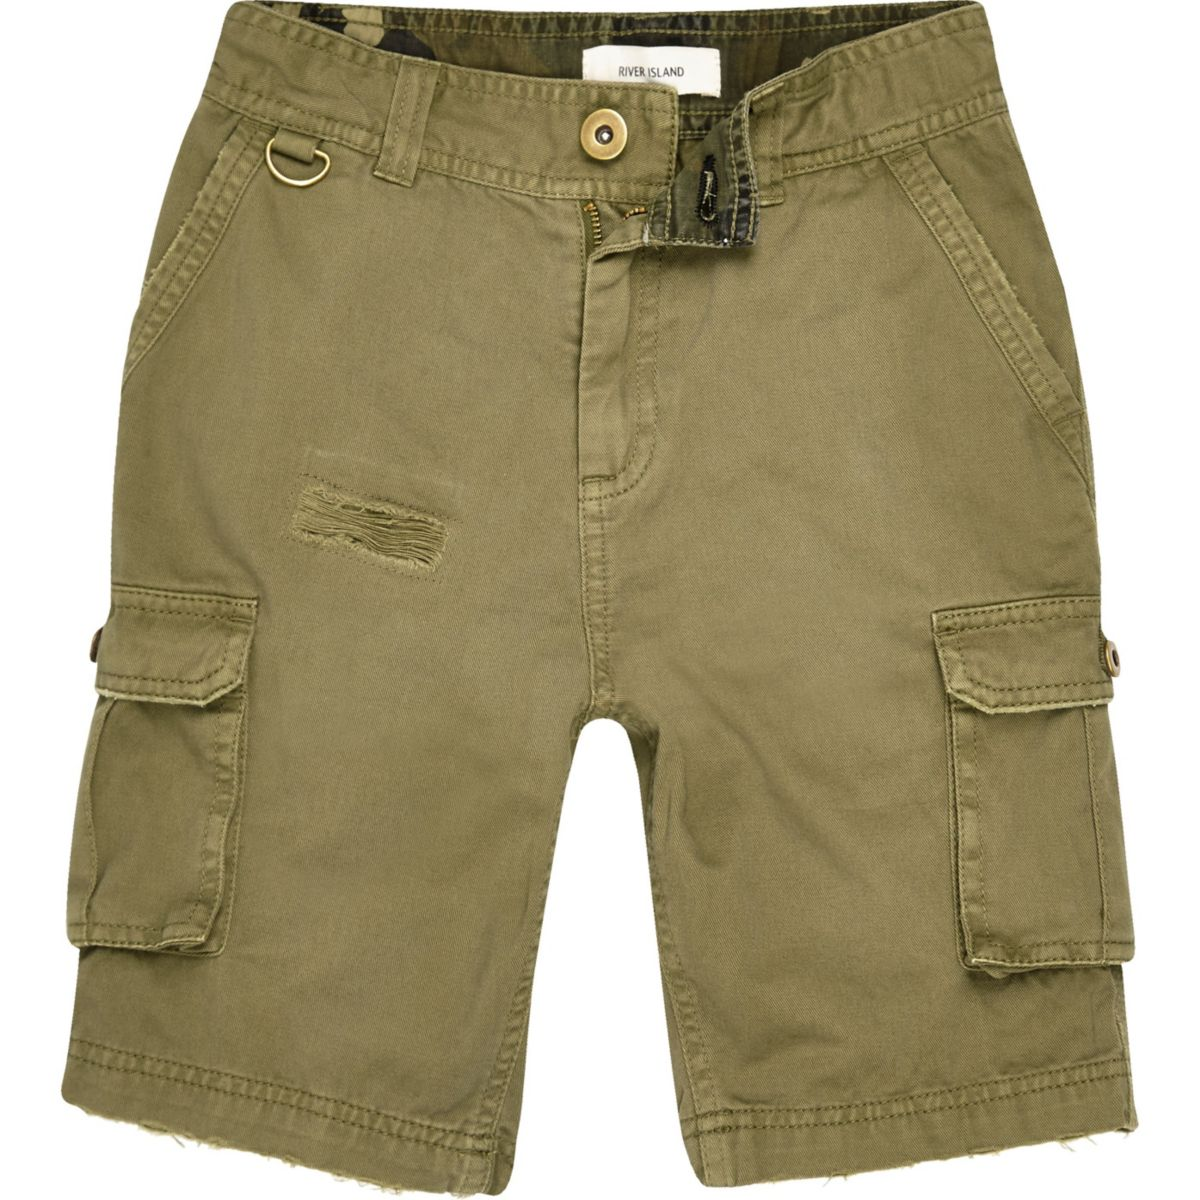 Shop this collection of little boys clothes by Kids From Garanimals! Kids From Garanimals offers mix and match boy clothes for sizes 4 to 8. Kids From Garanimals includes everyday essential pieces for his wardrobe: cargo shorts, graphic tees, henley shirts, striped and print tees, mesh athletic shorts, and much more.